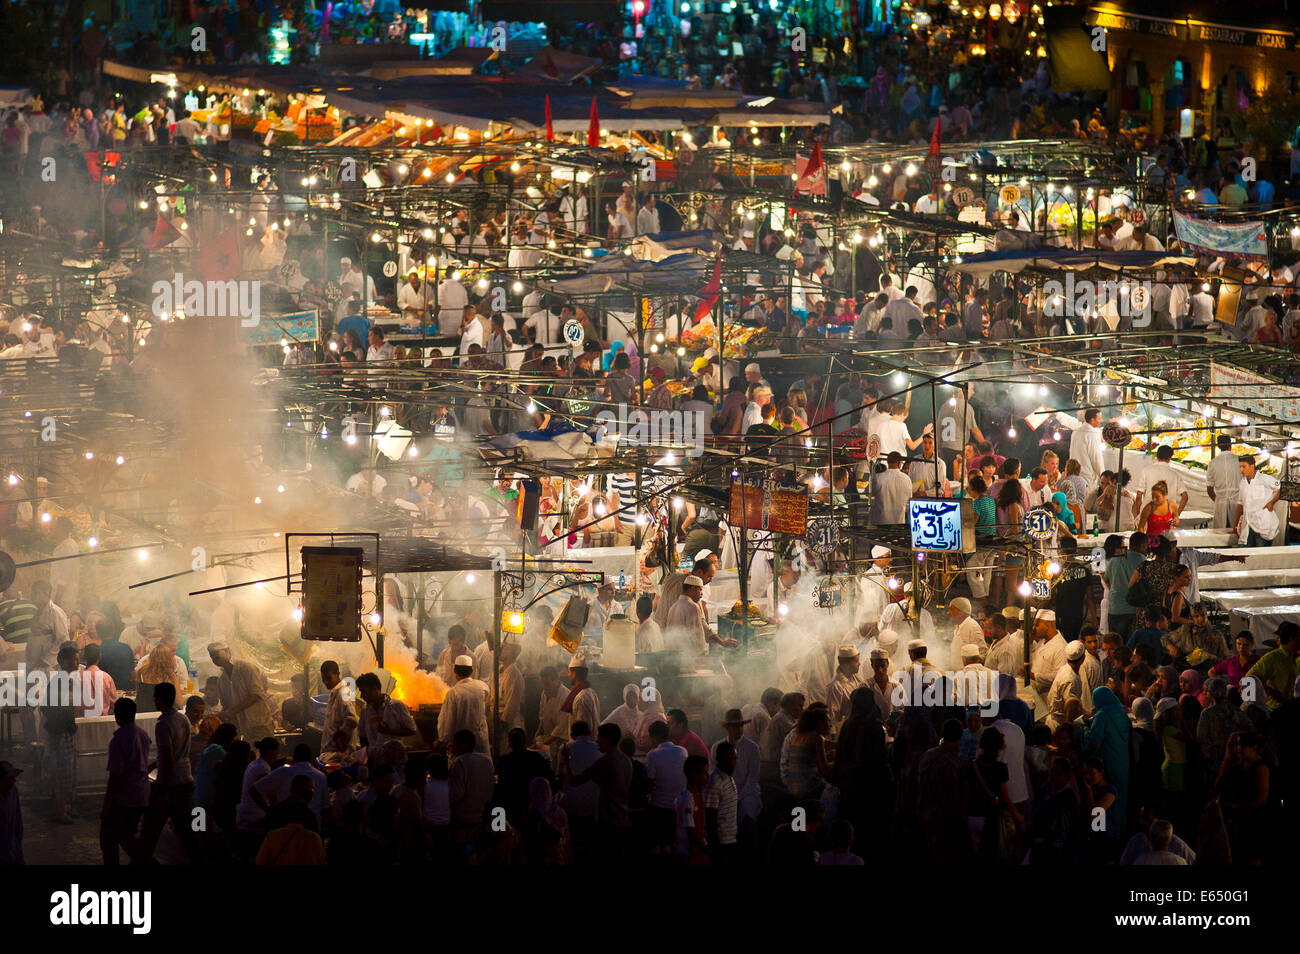 Food stalls in Djemaa el Fna square at night, Marrakech, Morocco - Stock Image